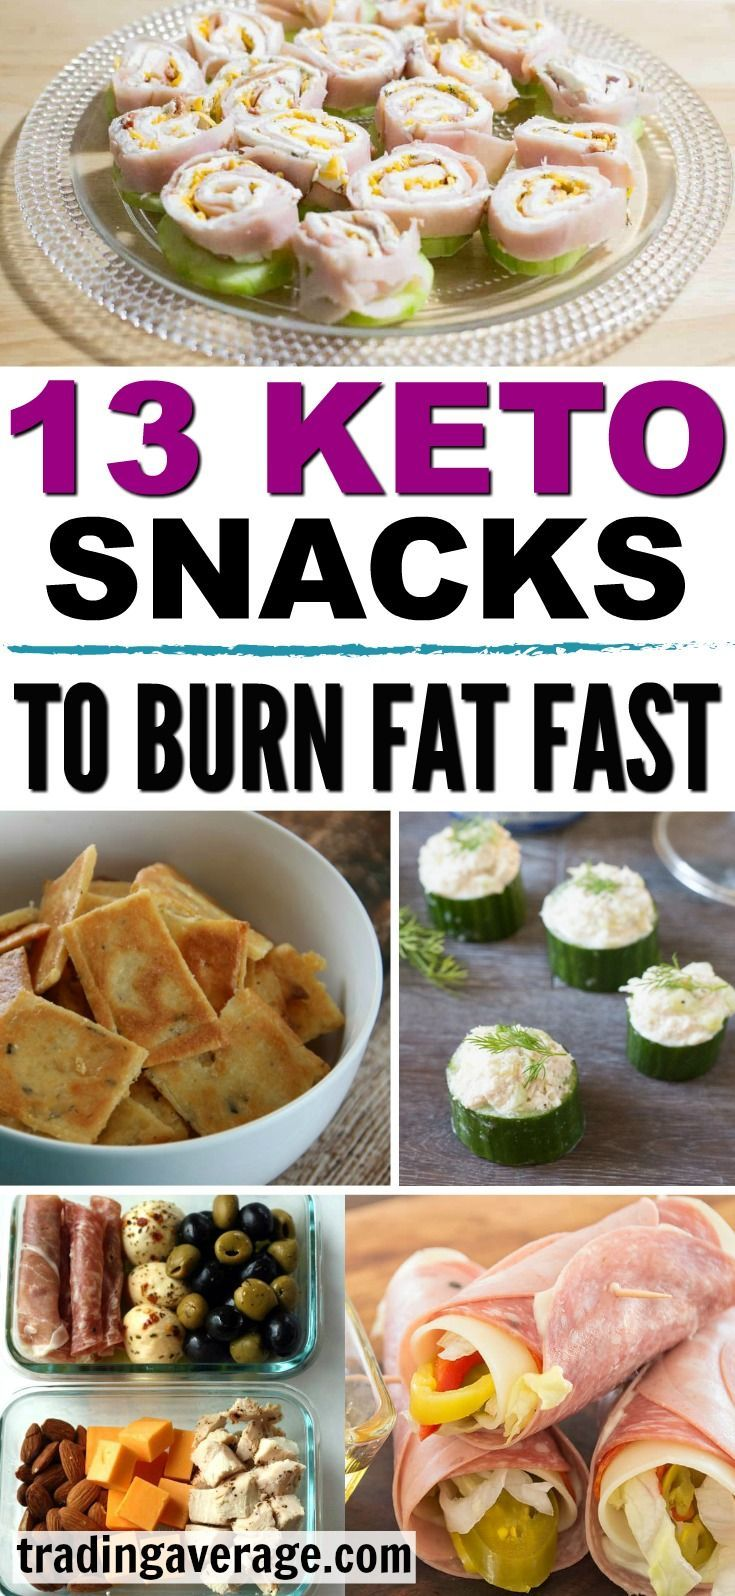 These keto snacks are exactly what I was looking for! Low carb treats and absolu...